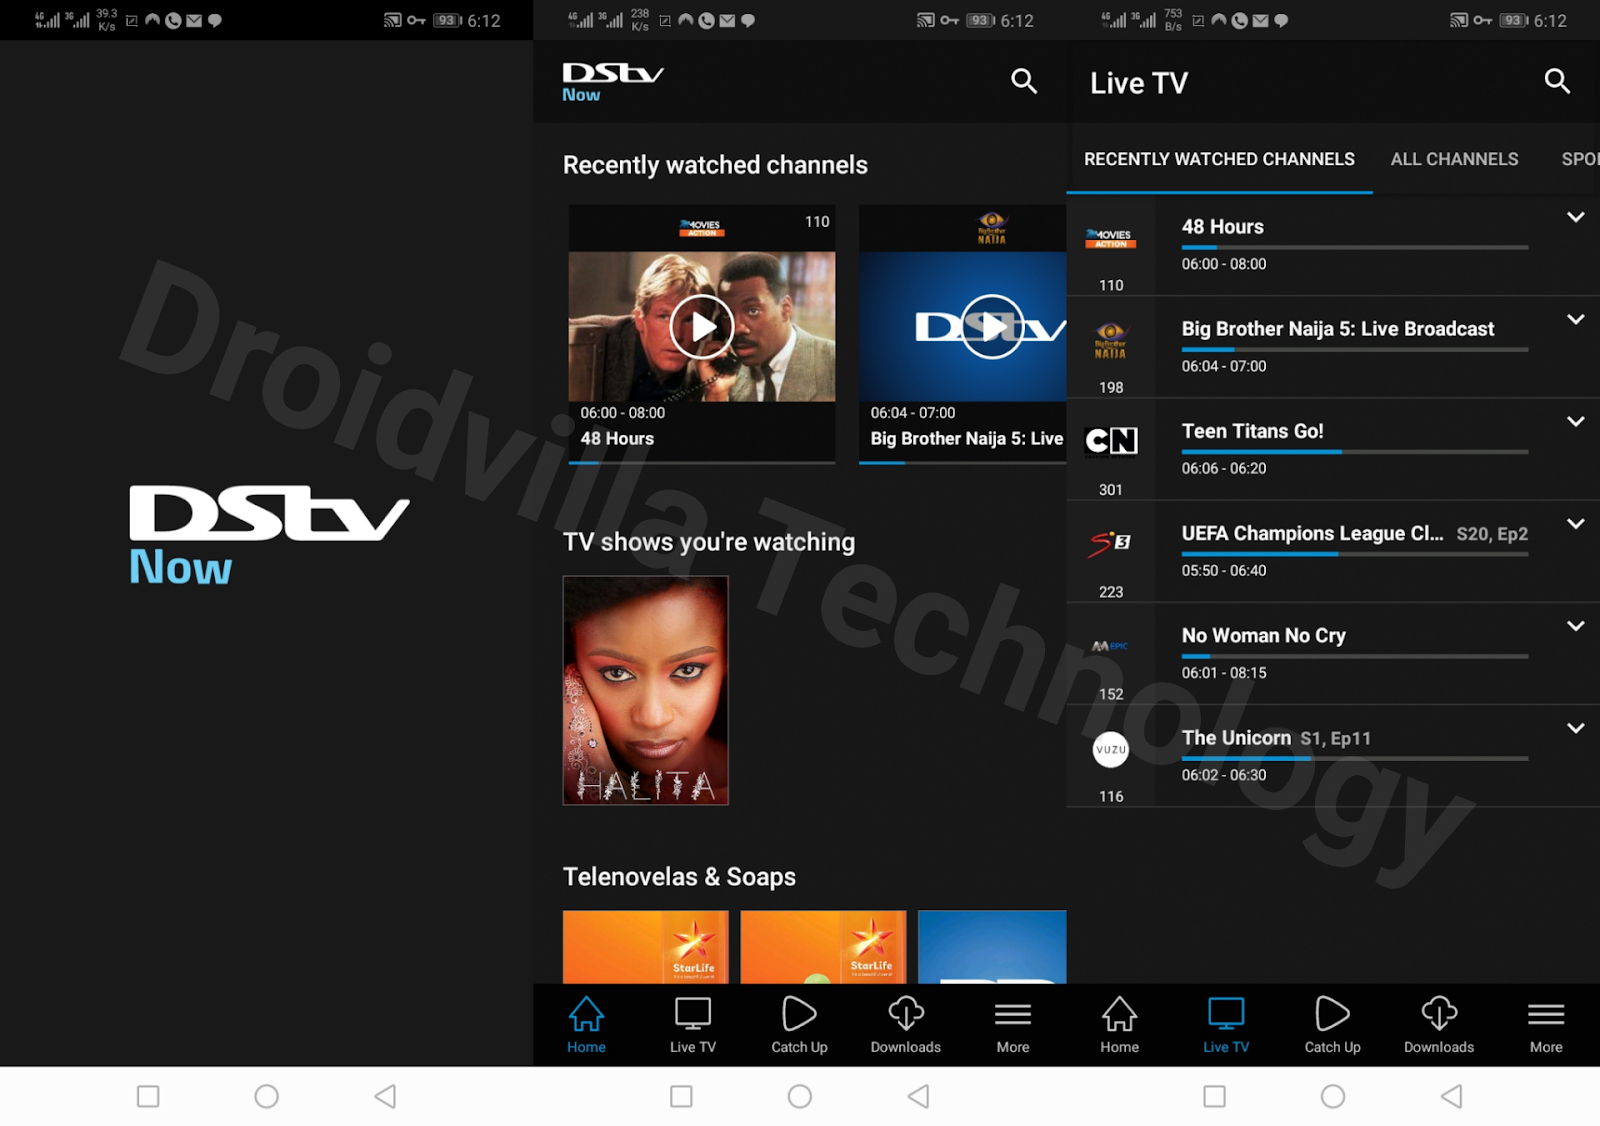 Dstv now app subscription